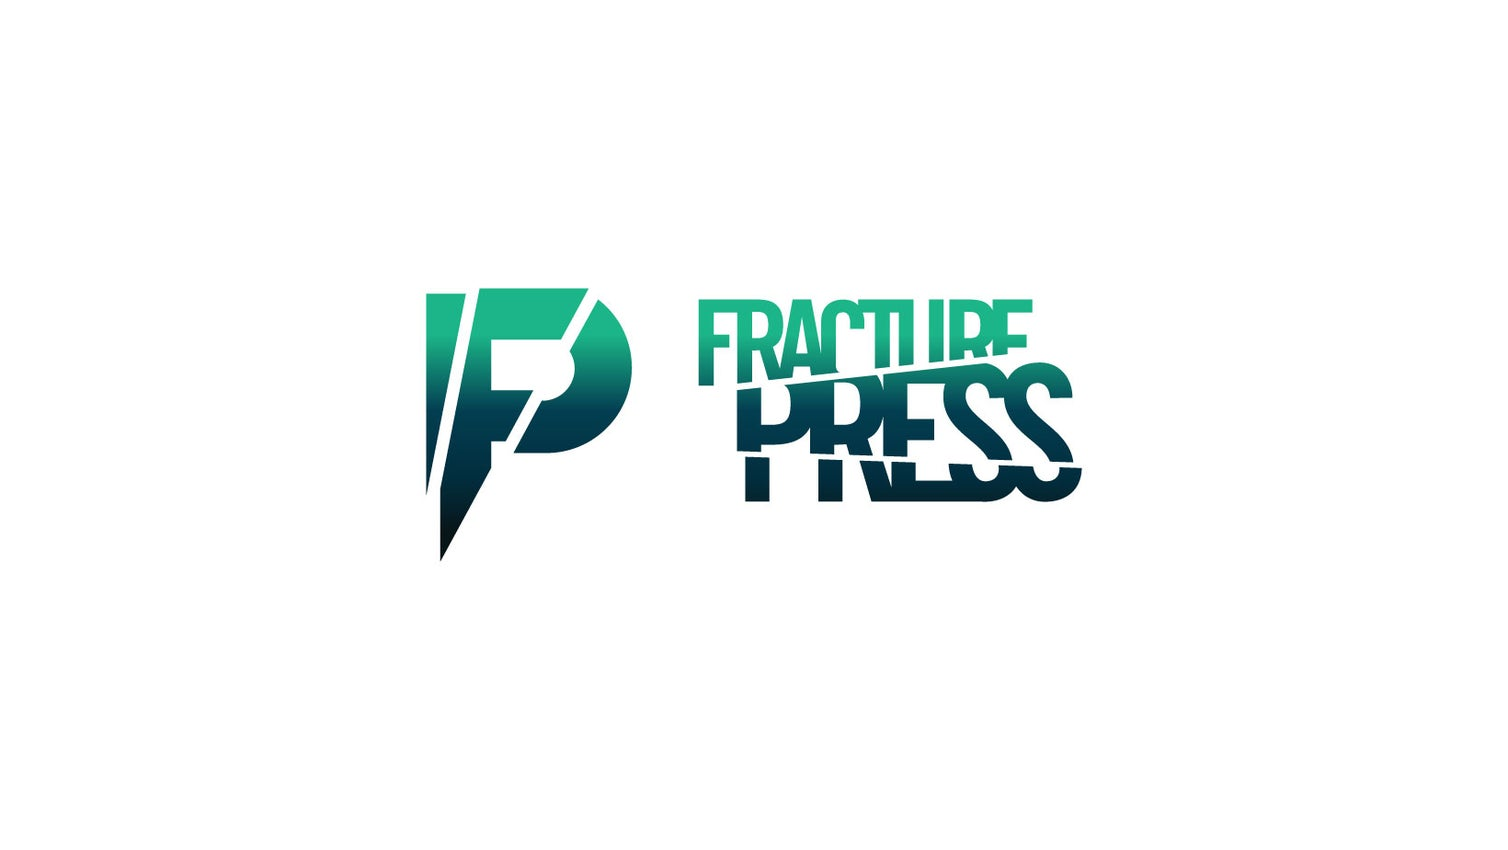 Fracture Press